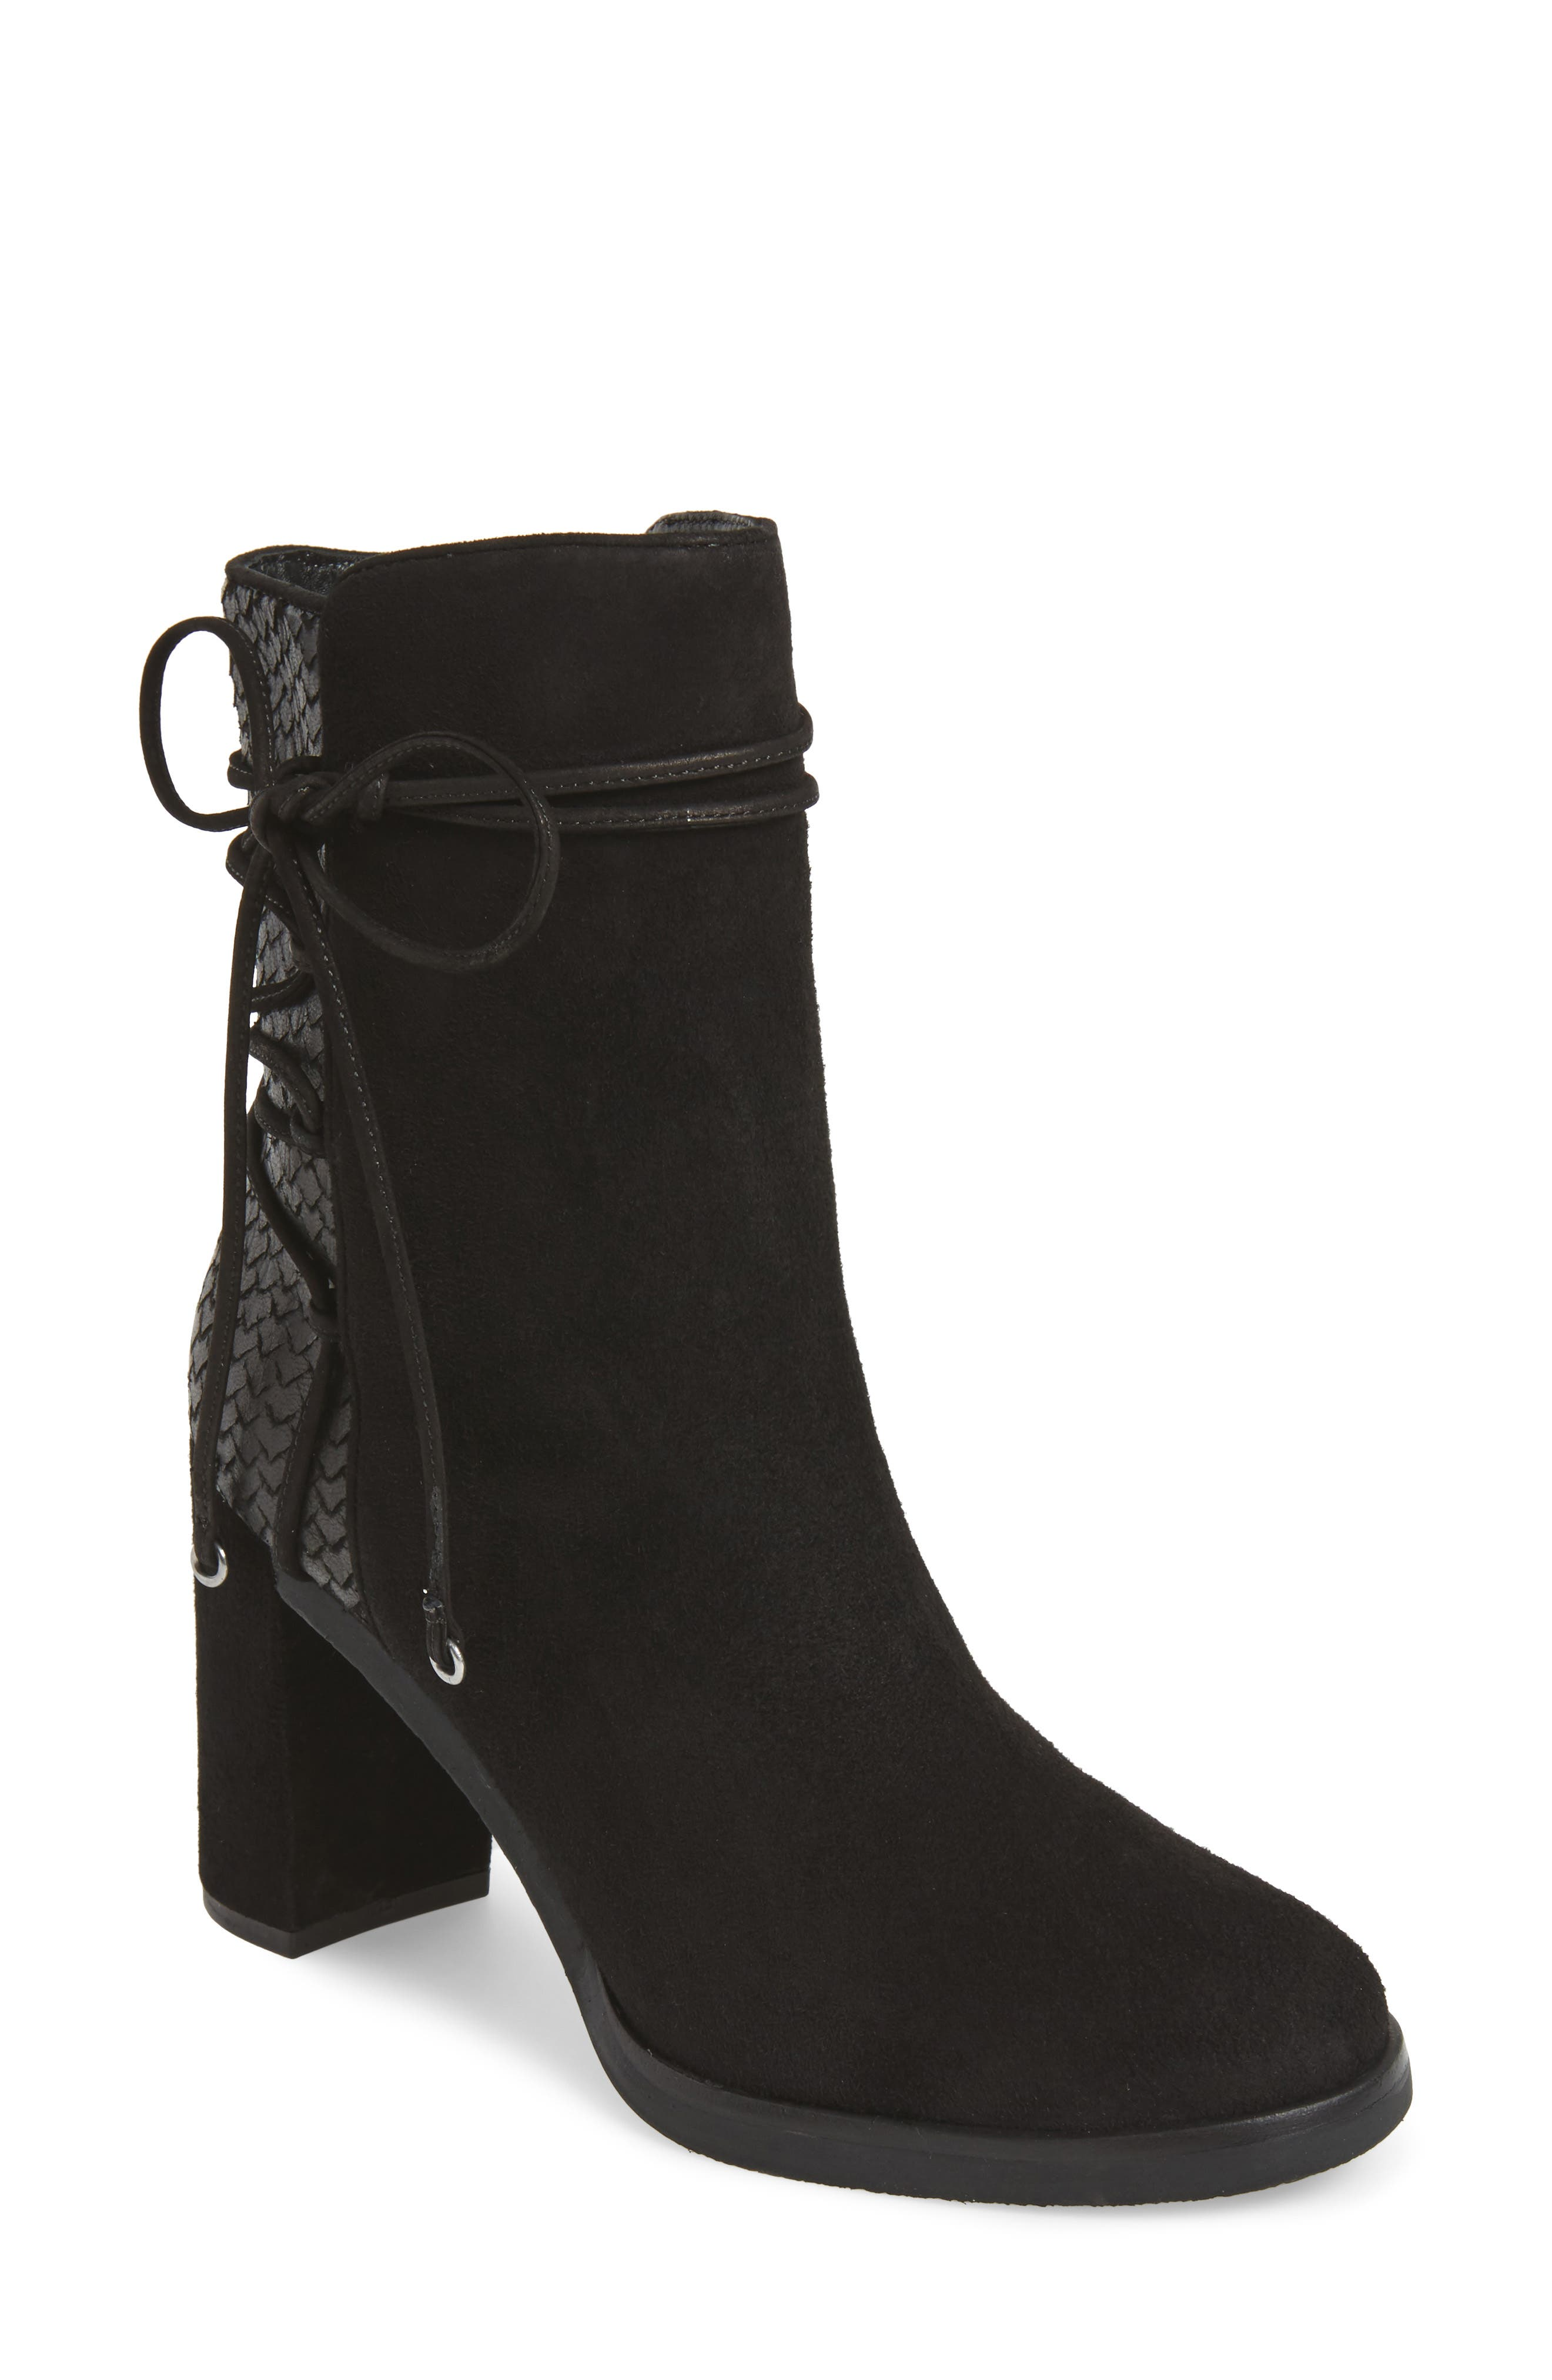 Main Image - Johnston & Murphy Adley Ankle Wrap Boot (Women)